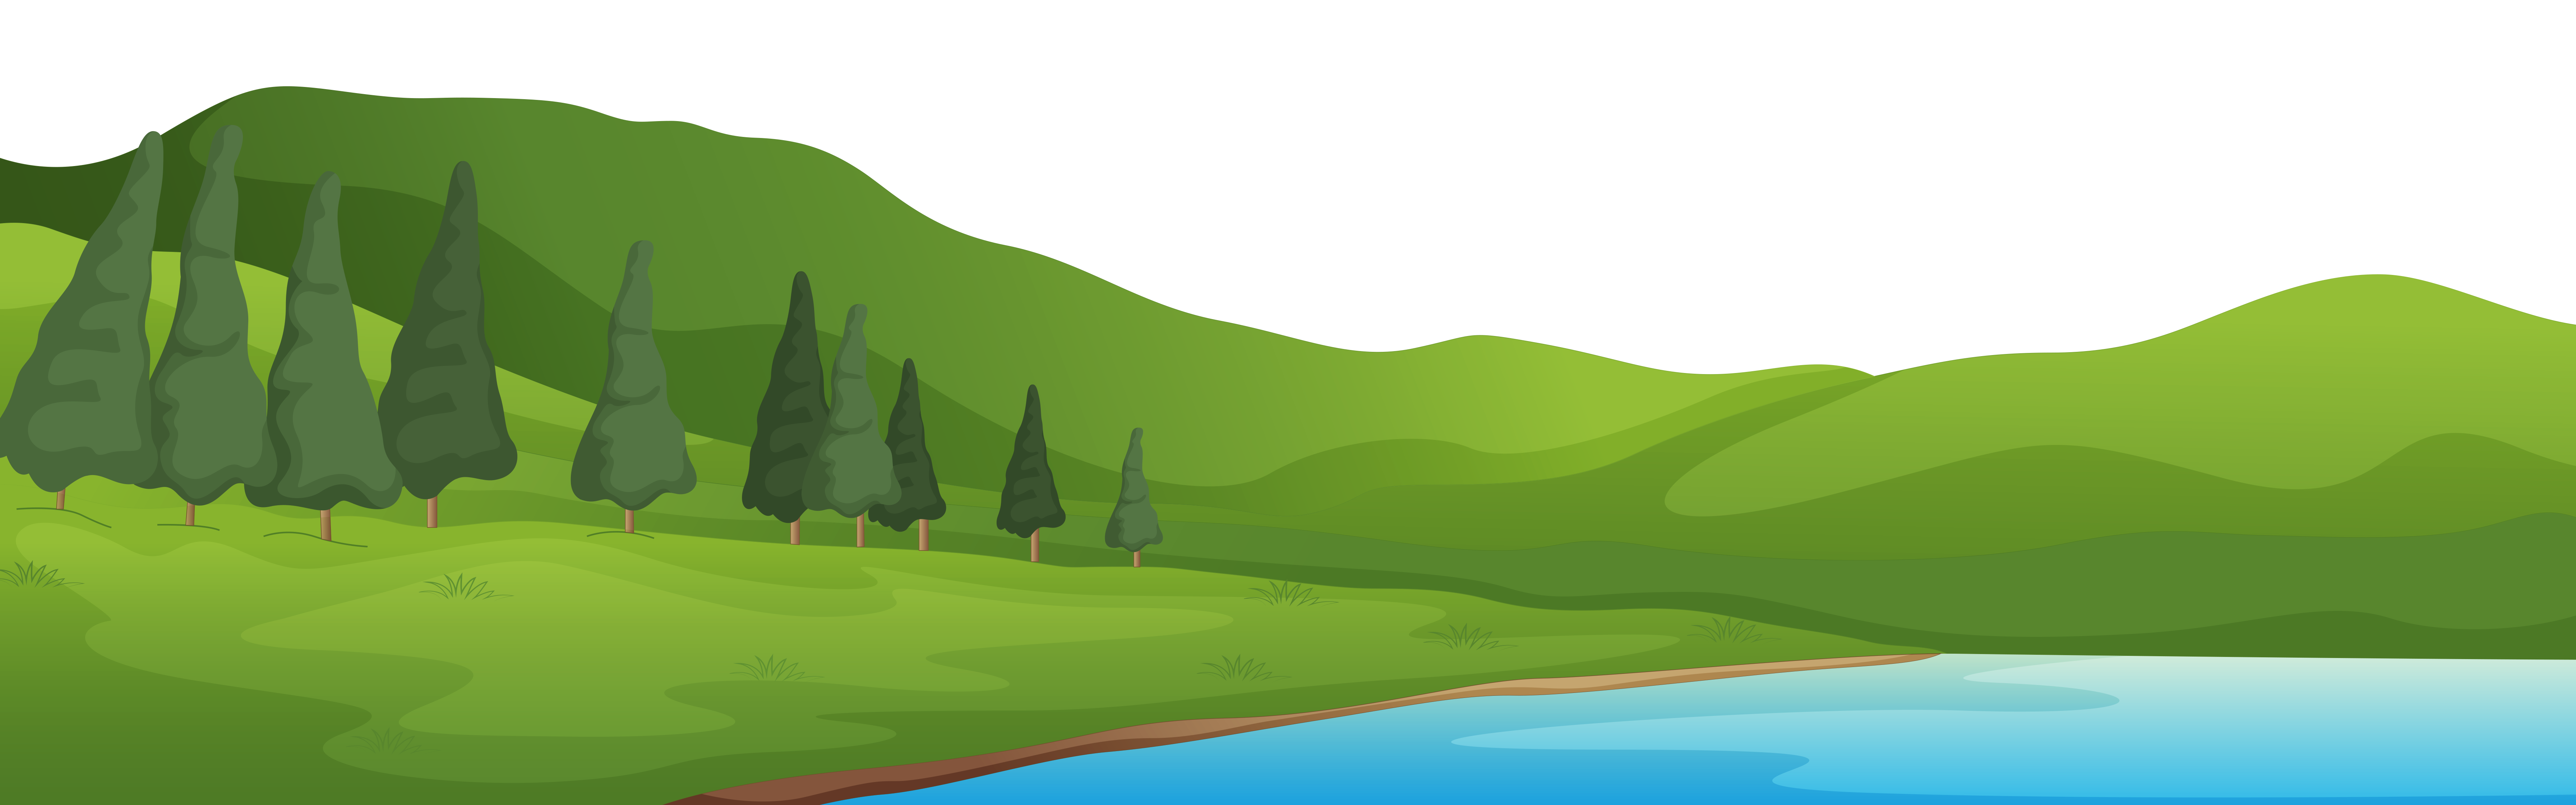 Grass clipart mountain. And lake ground png